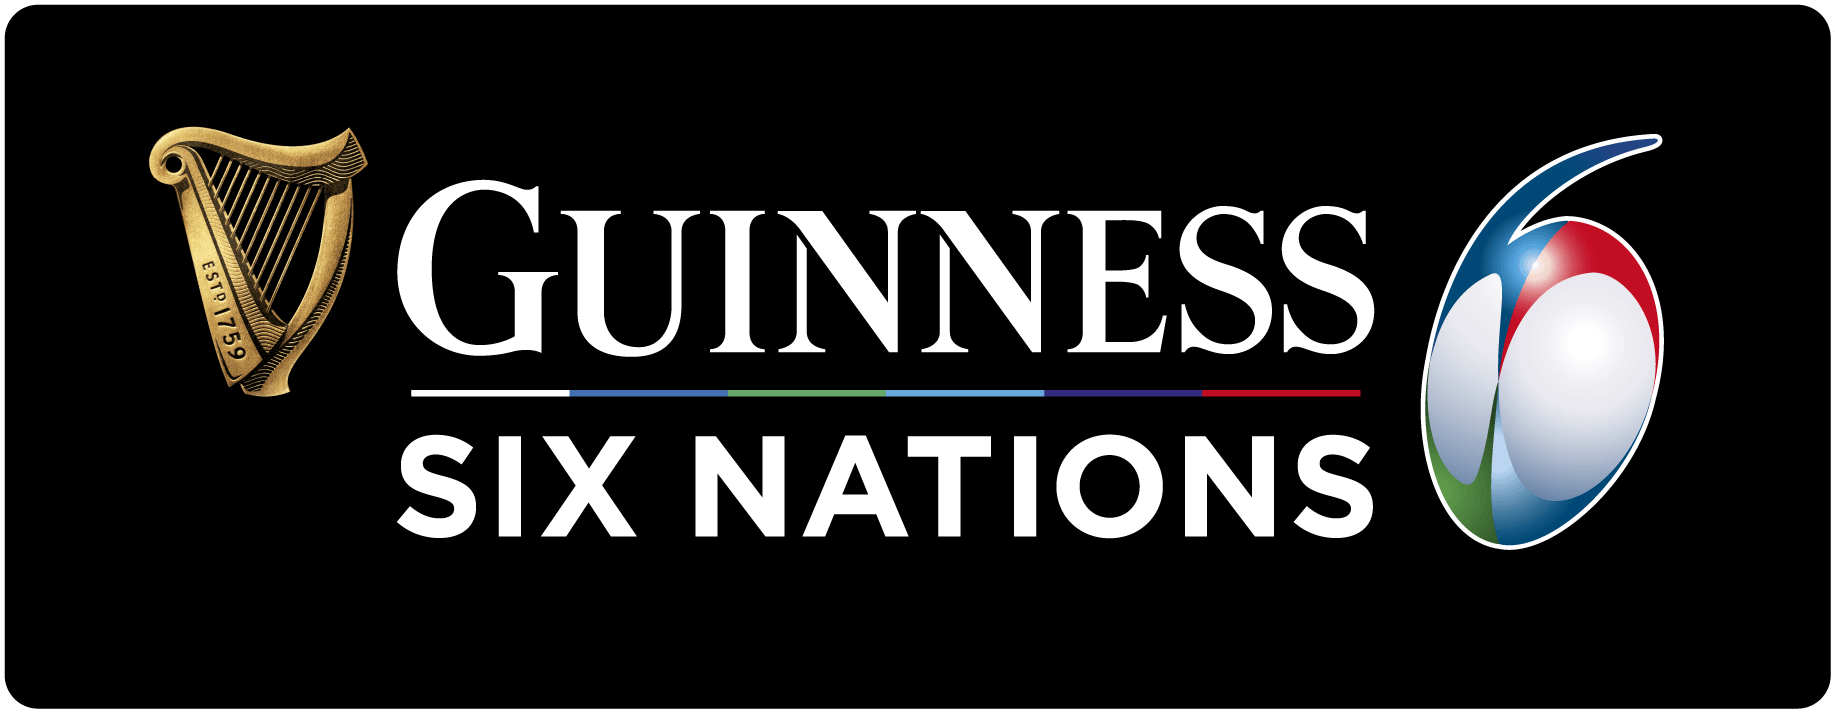 GUINNESS_SIX_NATIONS_LANDSCAPE_STACKED_RGB.tiny_1